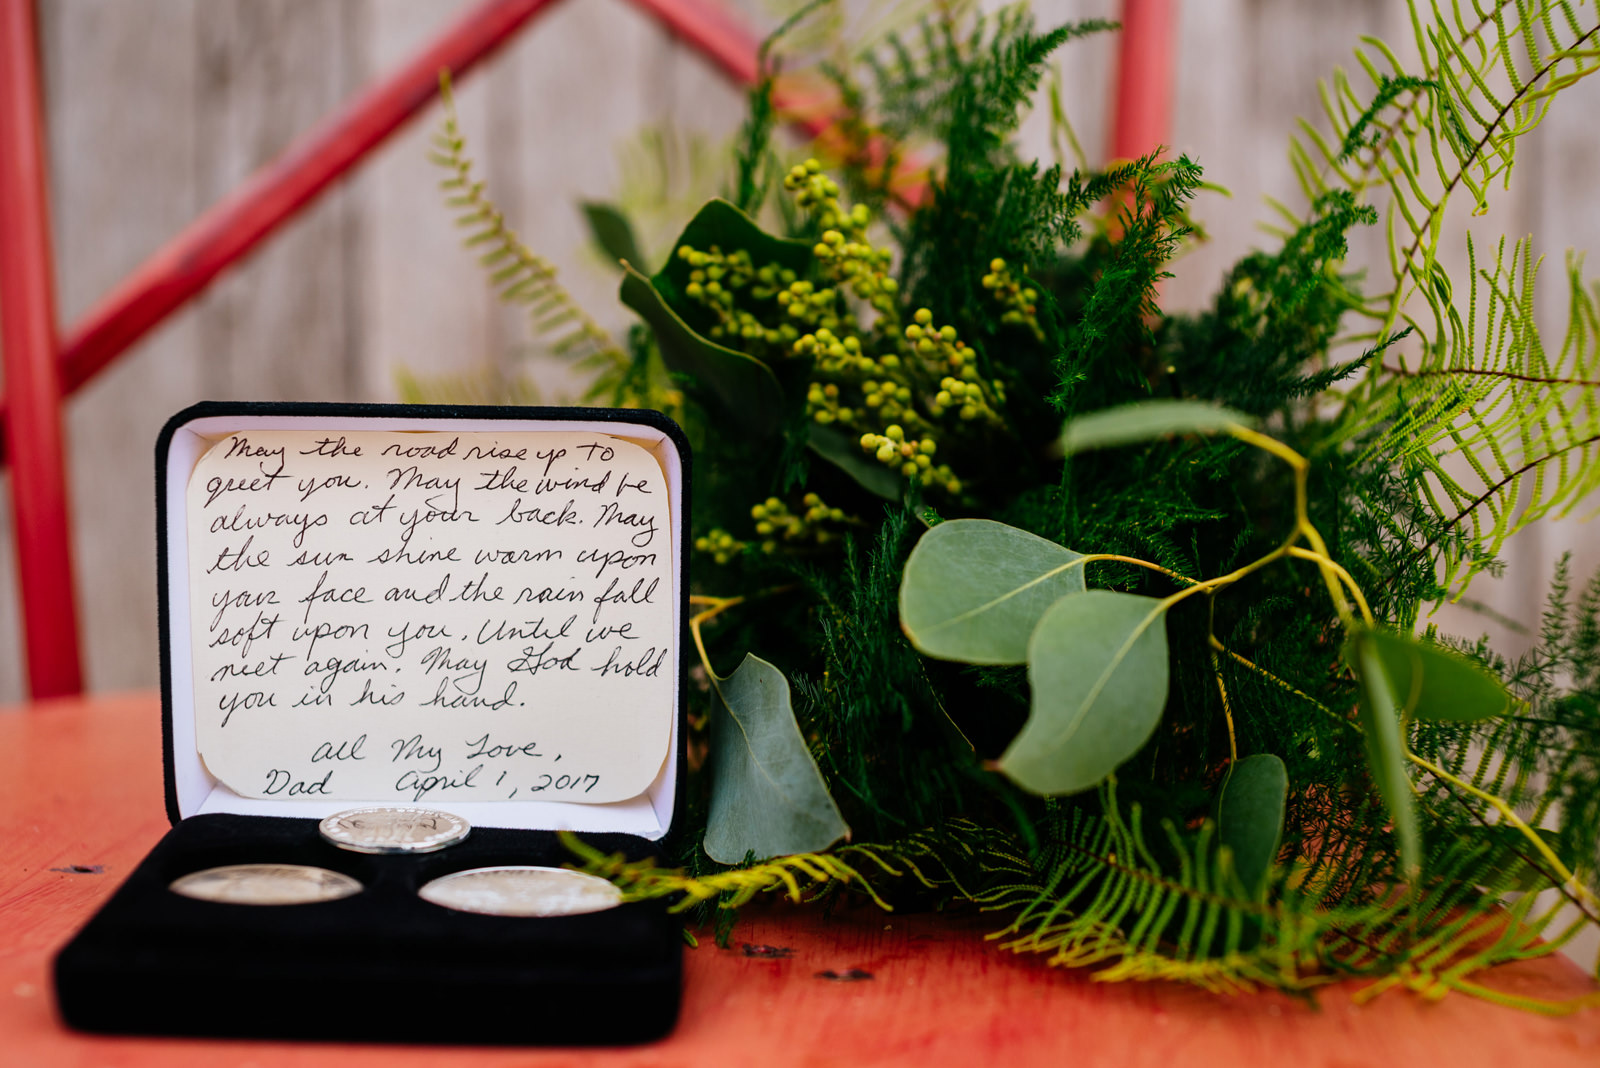 father gift and note to bride daughter wedding details